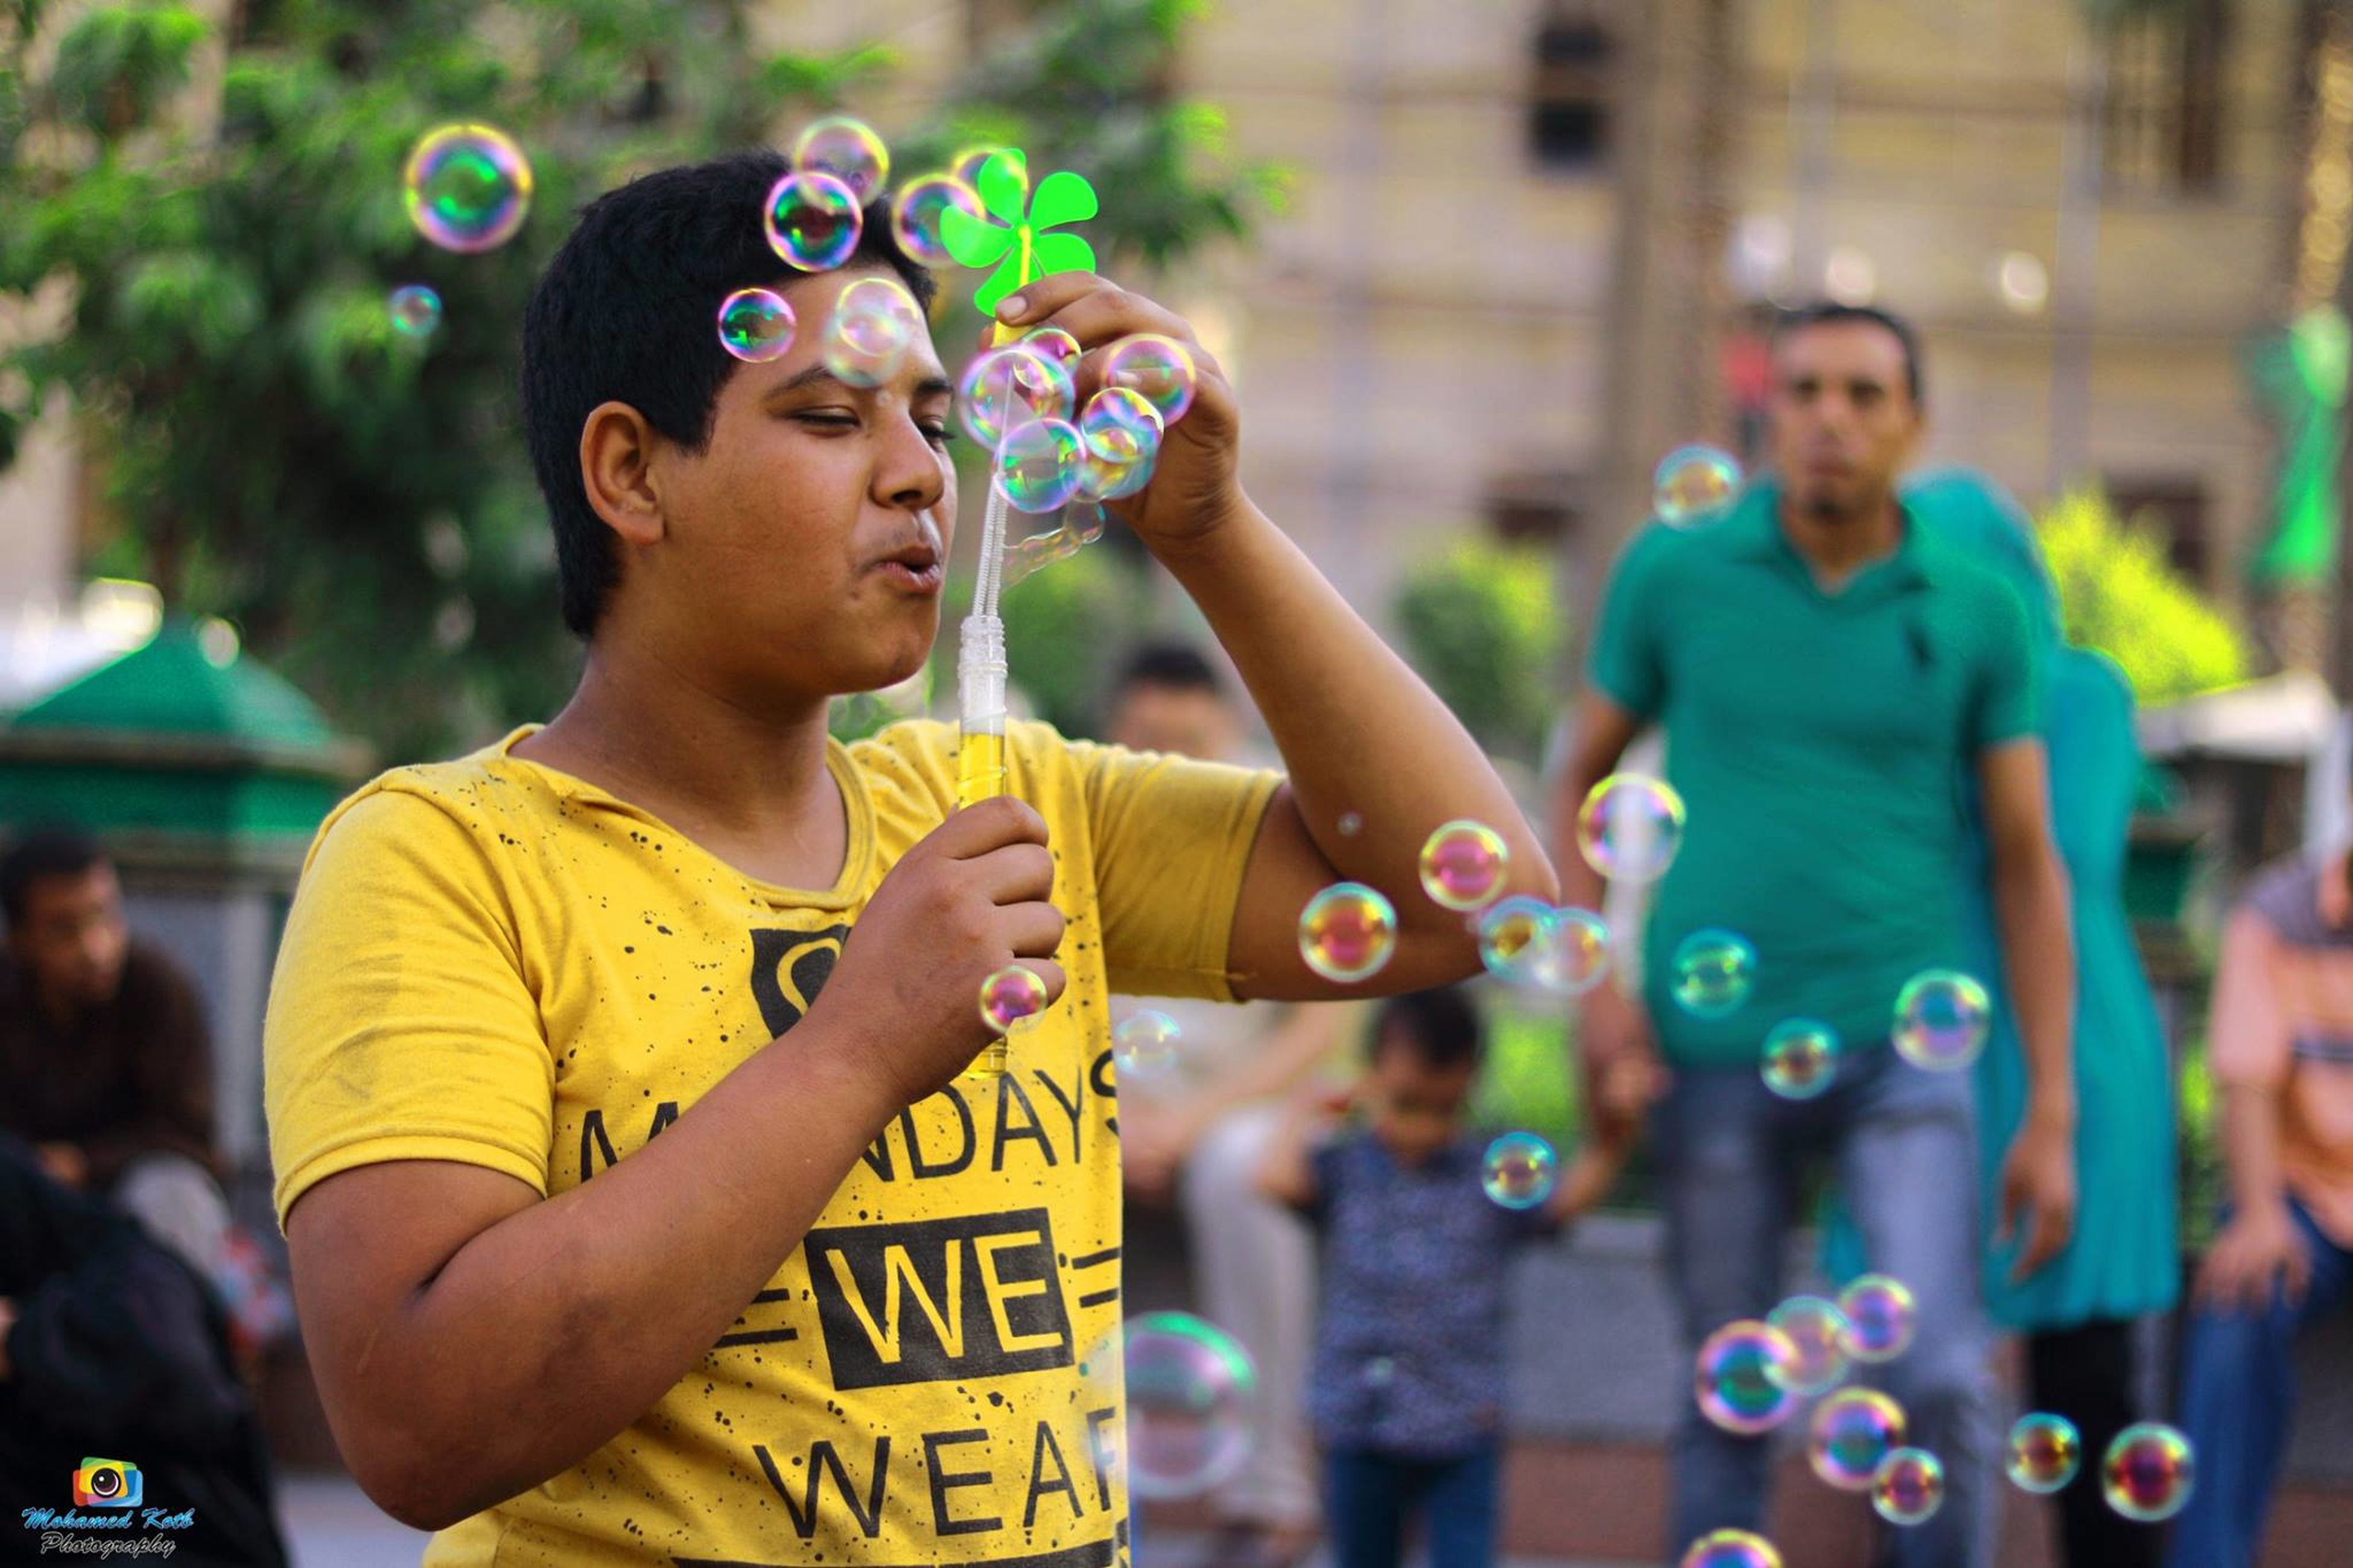 blowing, bubble, bubble wand, casual clothing, real people, focus on foreground, leisure activity, day, outdoors, fun, holding, lifestyles, young adult, adult, adults only, people